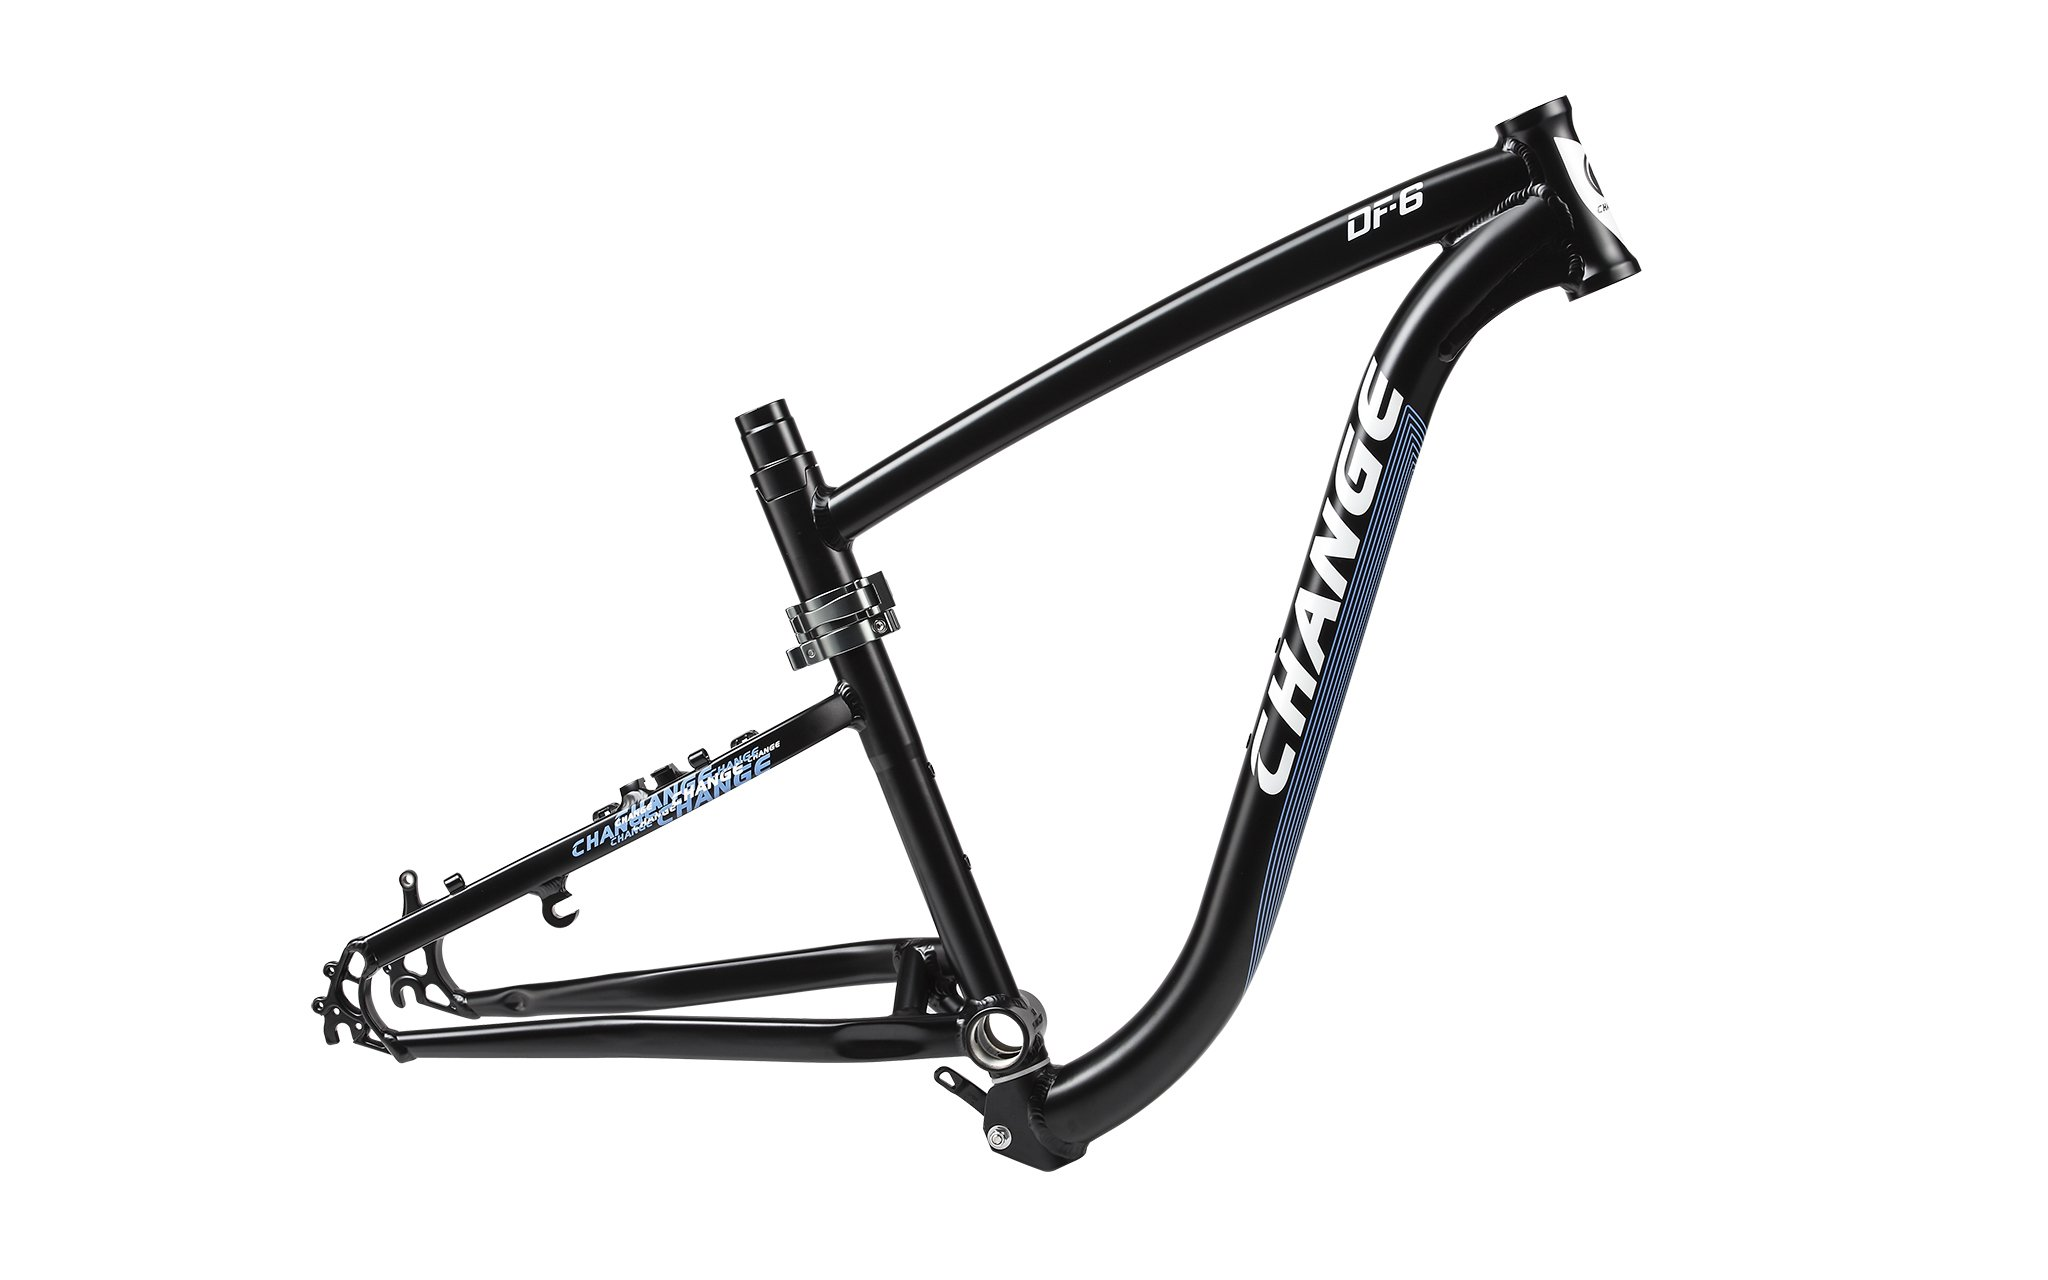 Dibs! Now accepting frame orders (road & mountain) - Flatbike